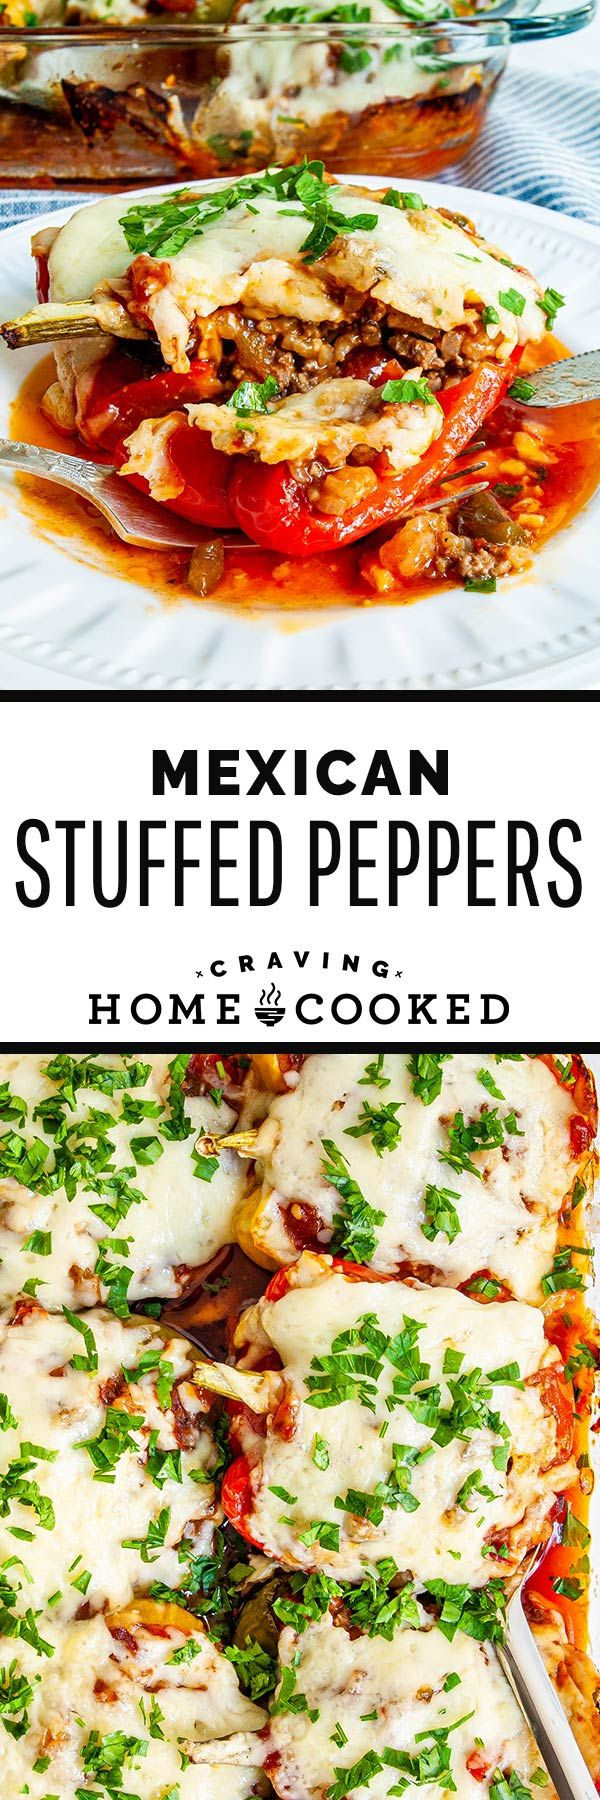 Incredibly cheesy, juicy and delicious Mexican Stuffed Peppers with a beef and rice mixture! So good and so easy to make. Total comfort food and a very satisfying meal! #mexican #stuffedpeppers #beefandrice